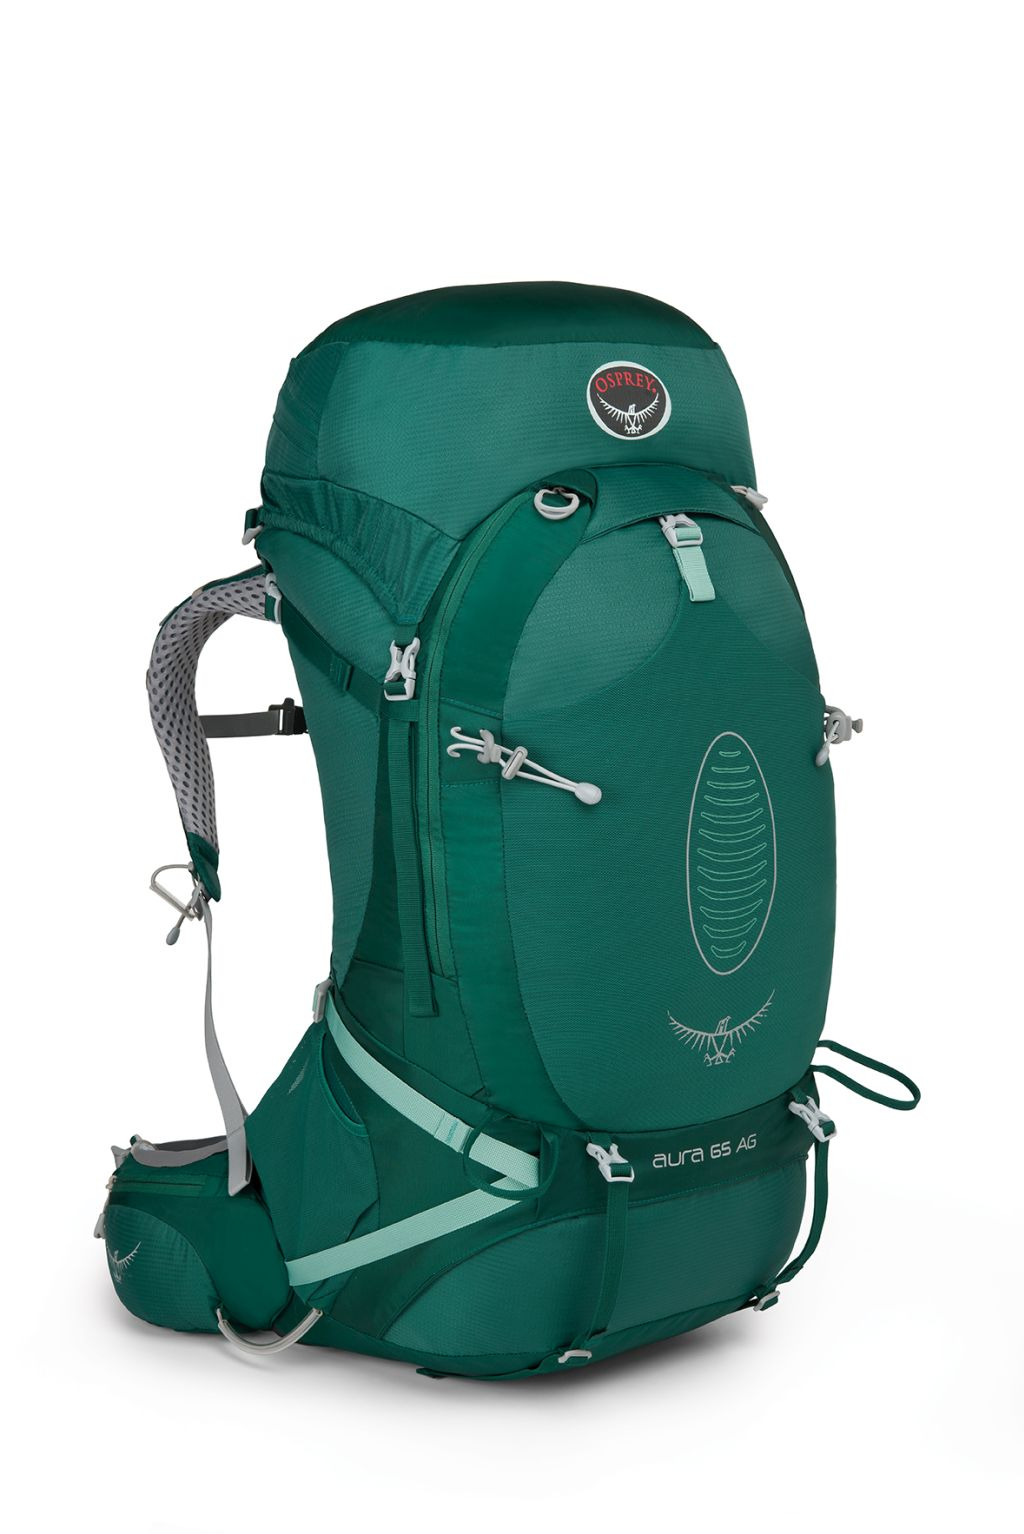 Osprey Aura AG 65 Rainforest Green-30